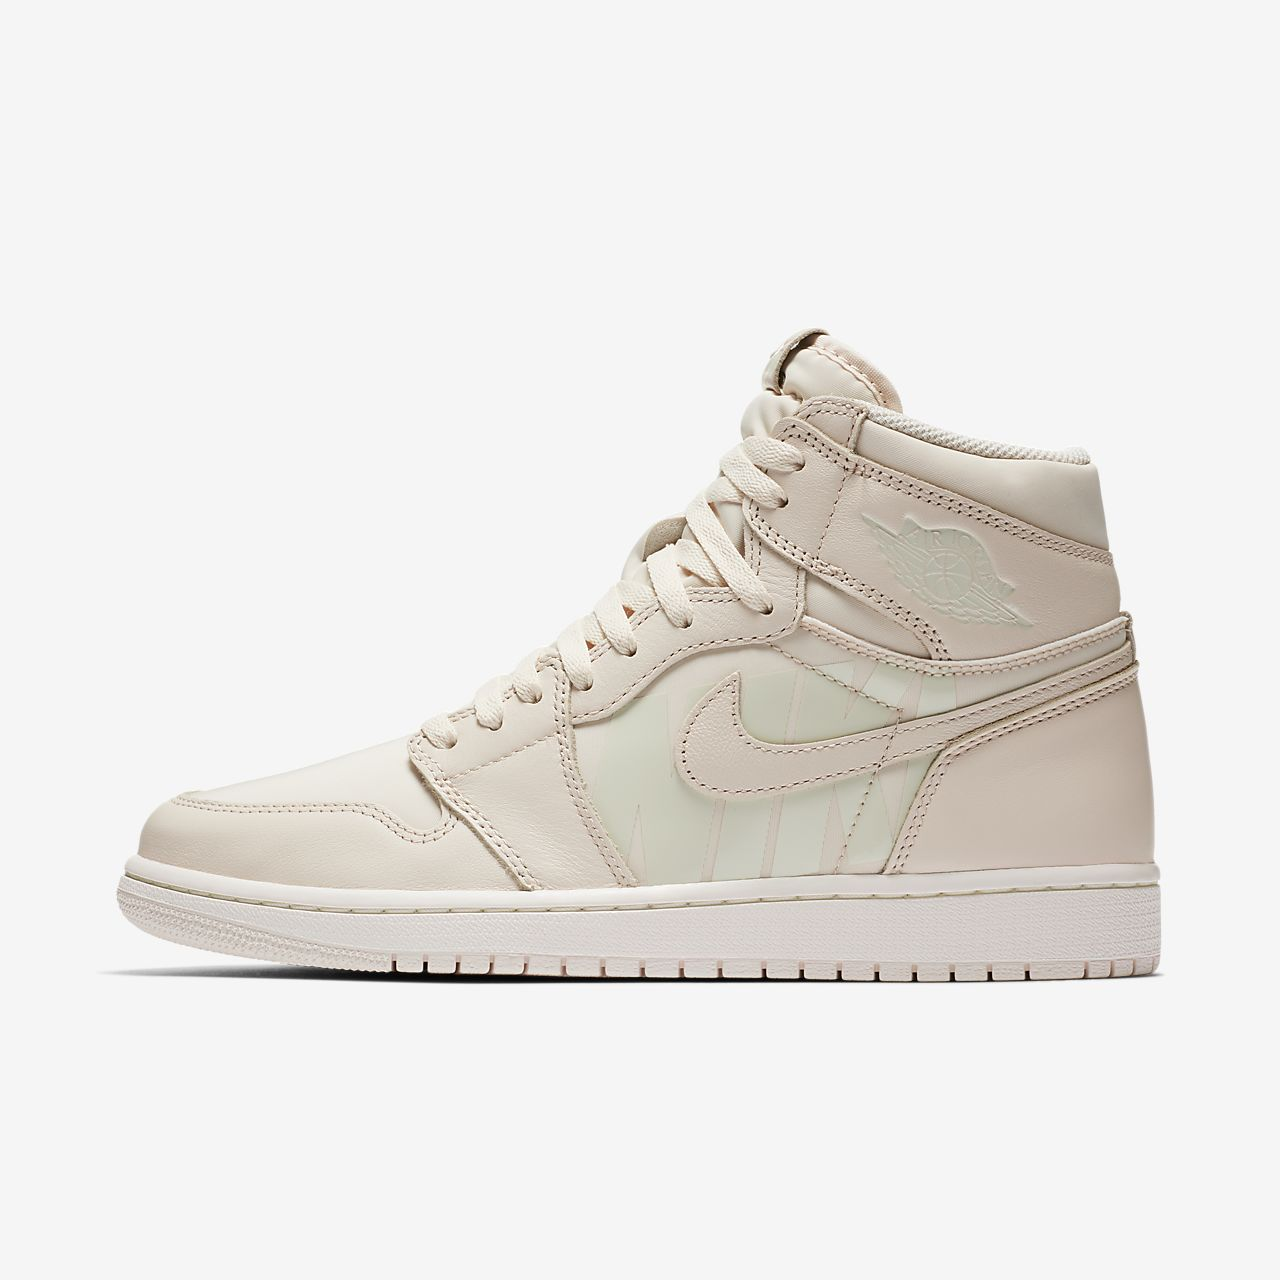 e06ffbe36a13 Air Jordan 1 Retro High OG Shoe. Nike.com